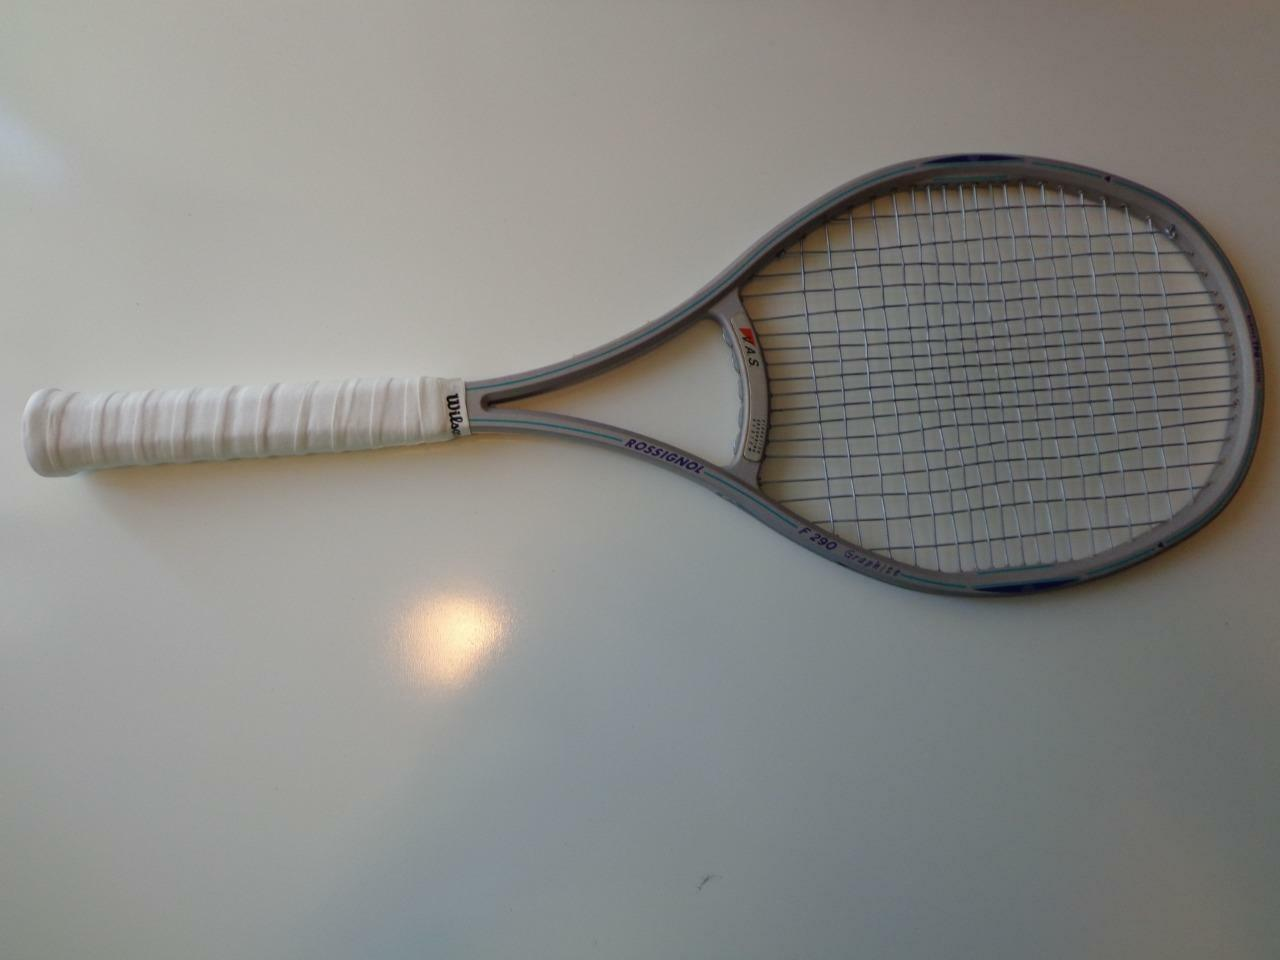 Rossignol F290 Midsize Made in France 4 4 4 1/2 grip Tennis Racquet 4fc4c1